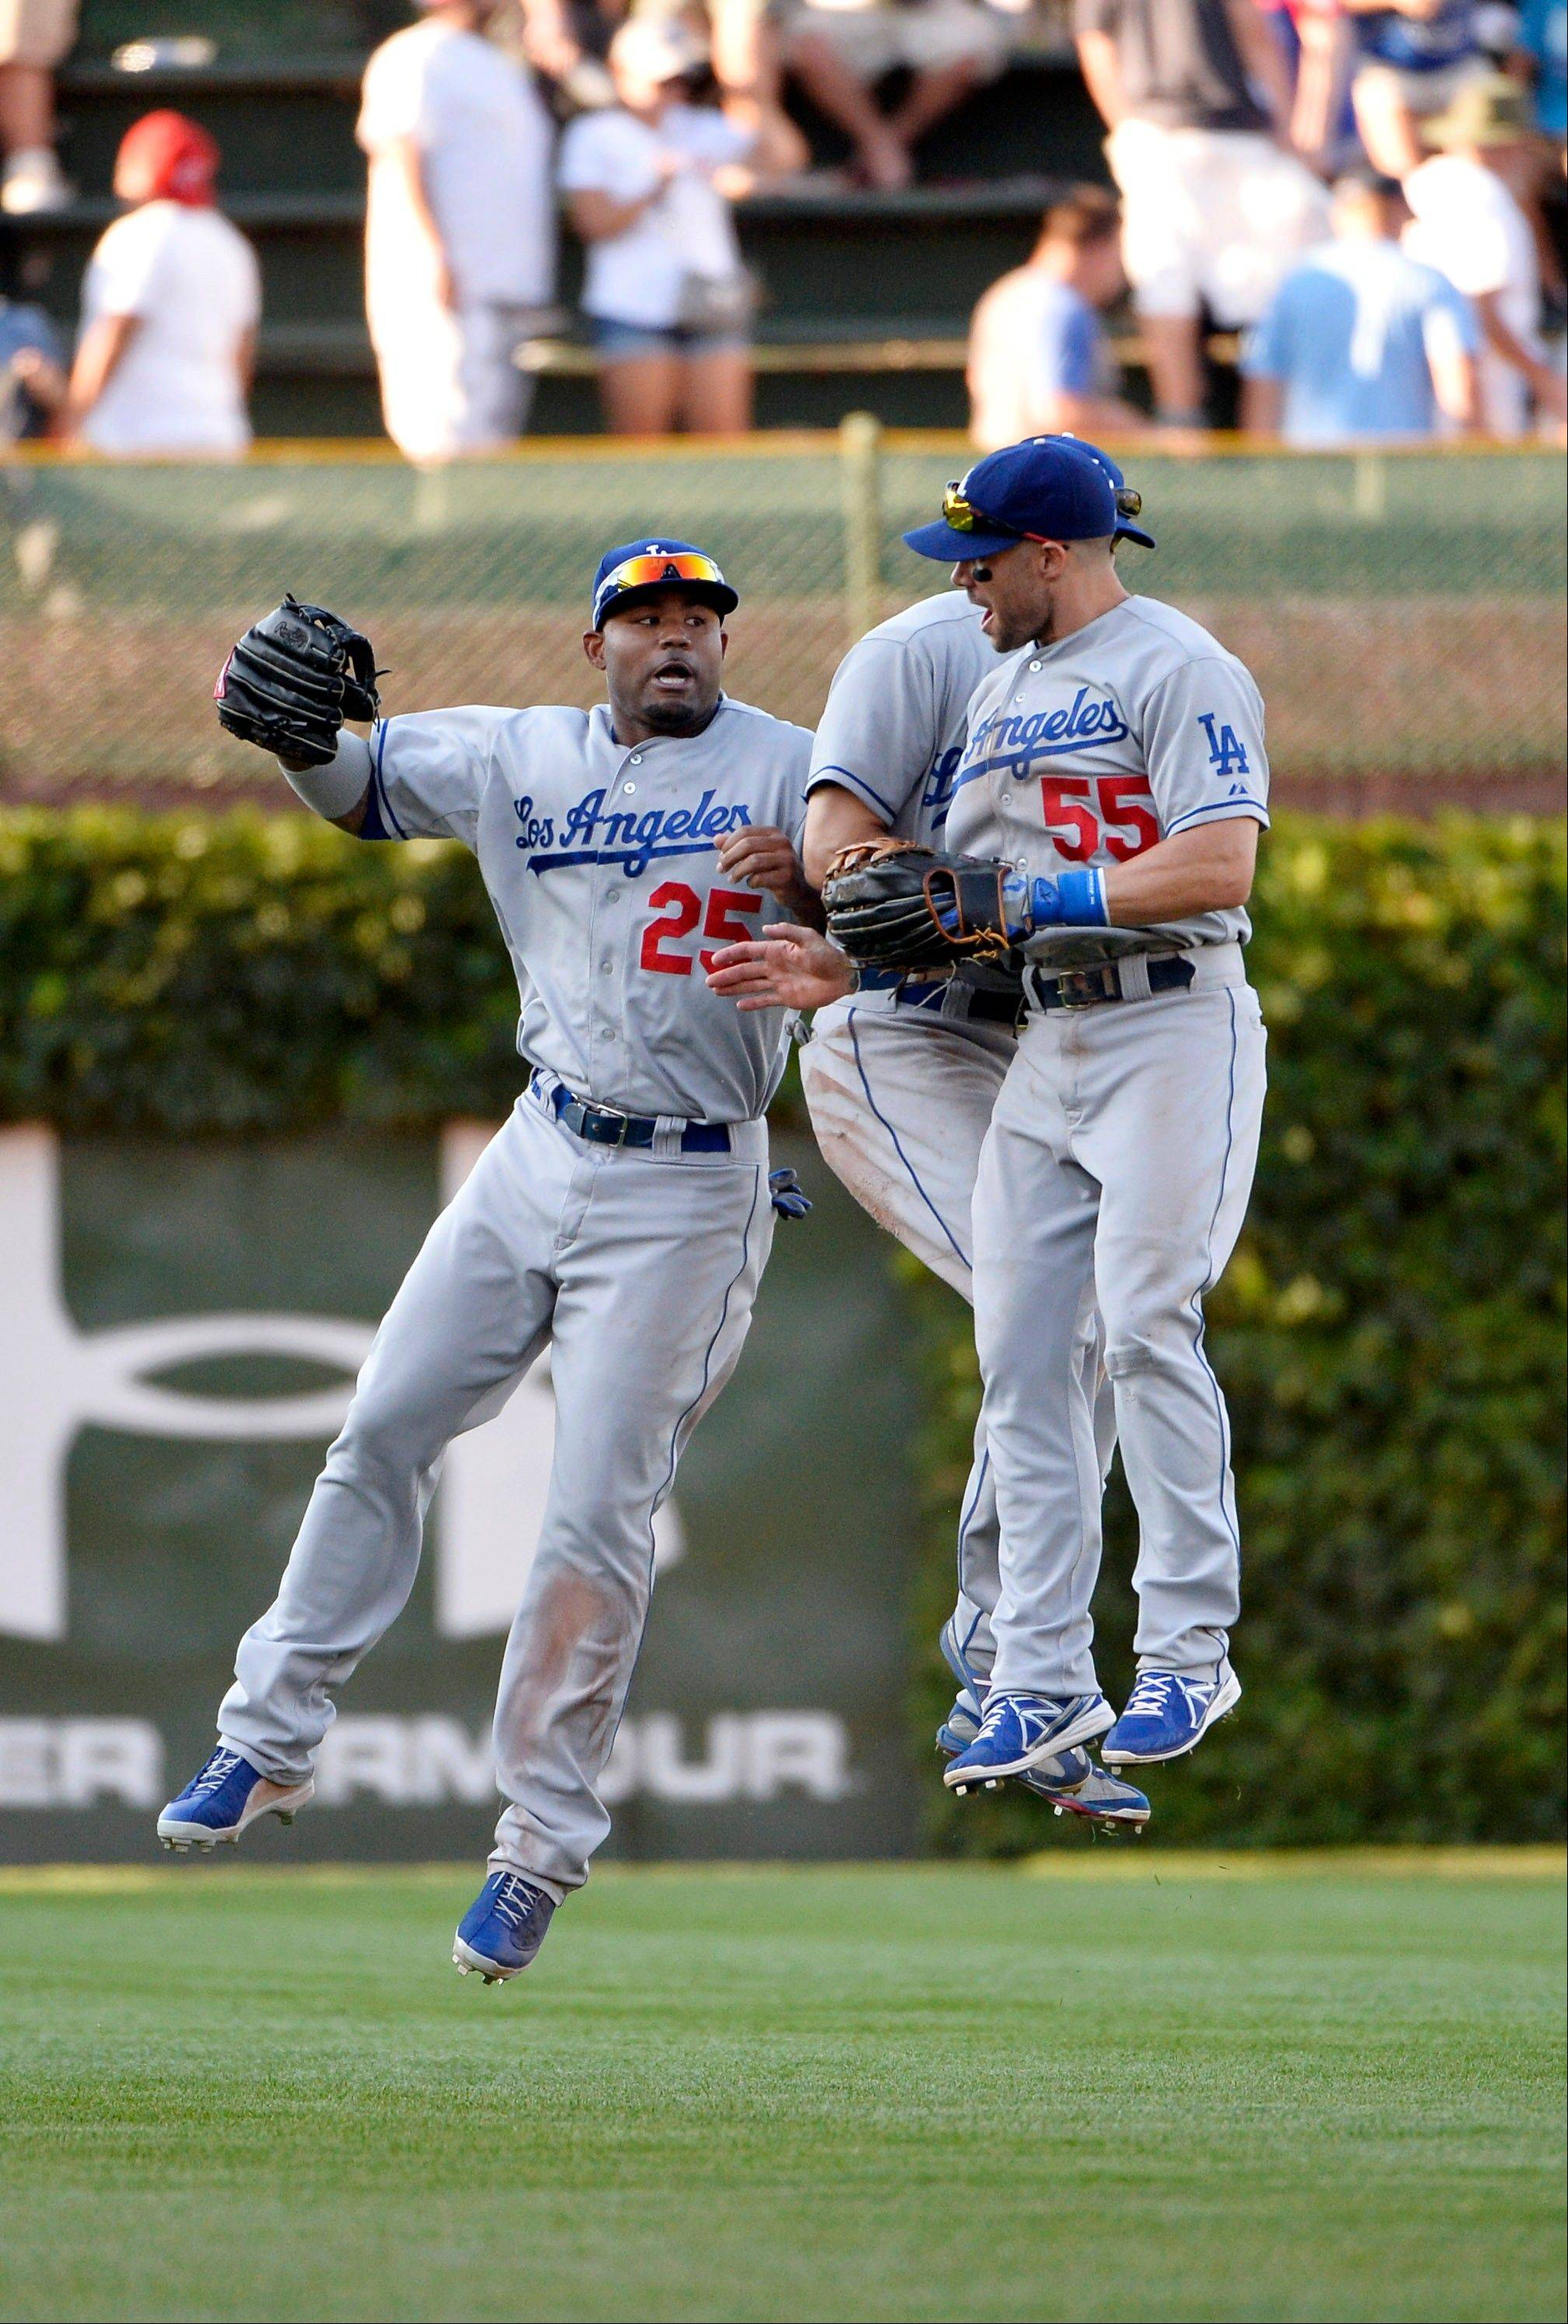 Los Angeles Dodgers outfielders Carl Crawford, left to right, Andre Ethier and Skip Schumaker celebrate their win after a baseball game against the Chicago Cubs, Saturday, Aug. 3, 2013, in Chicago. The Dodgers won 3-0.